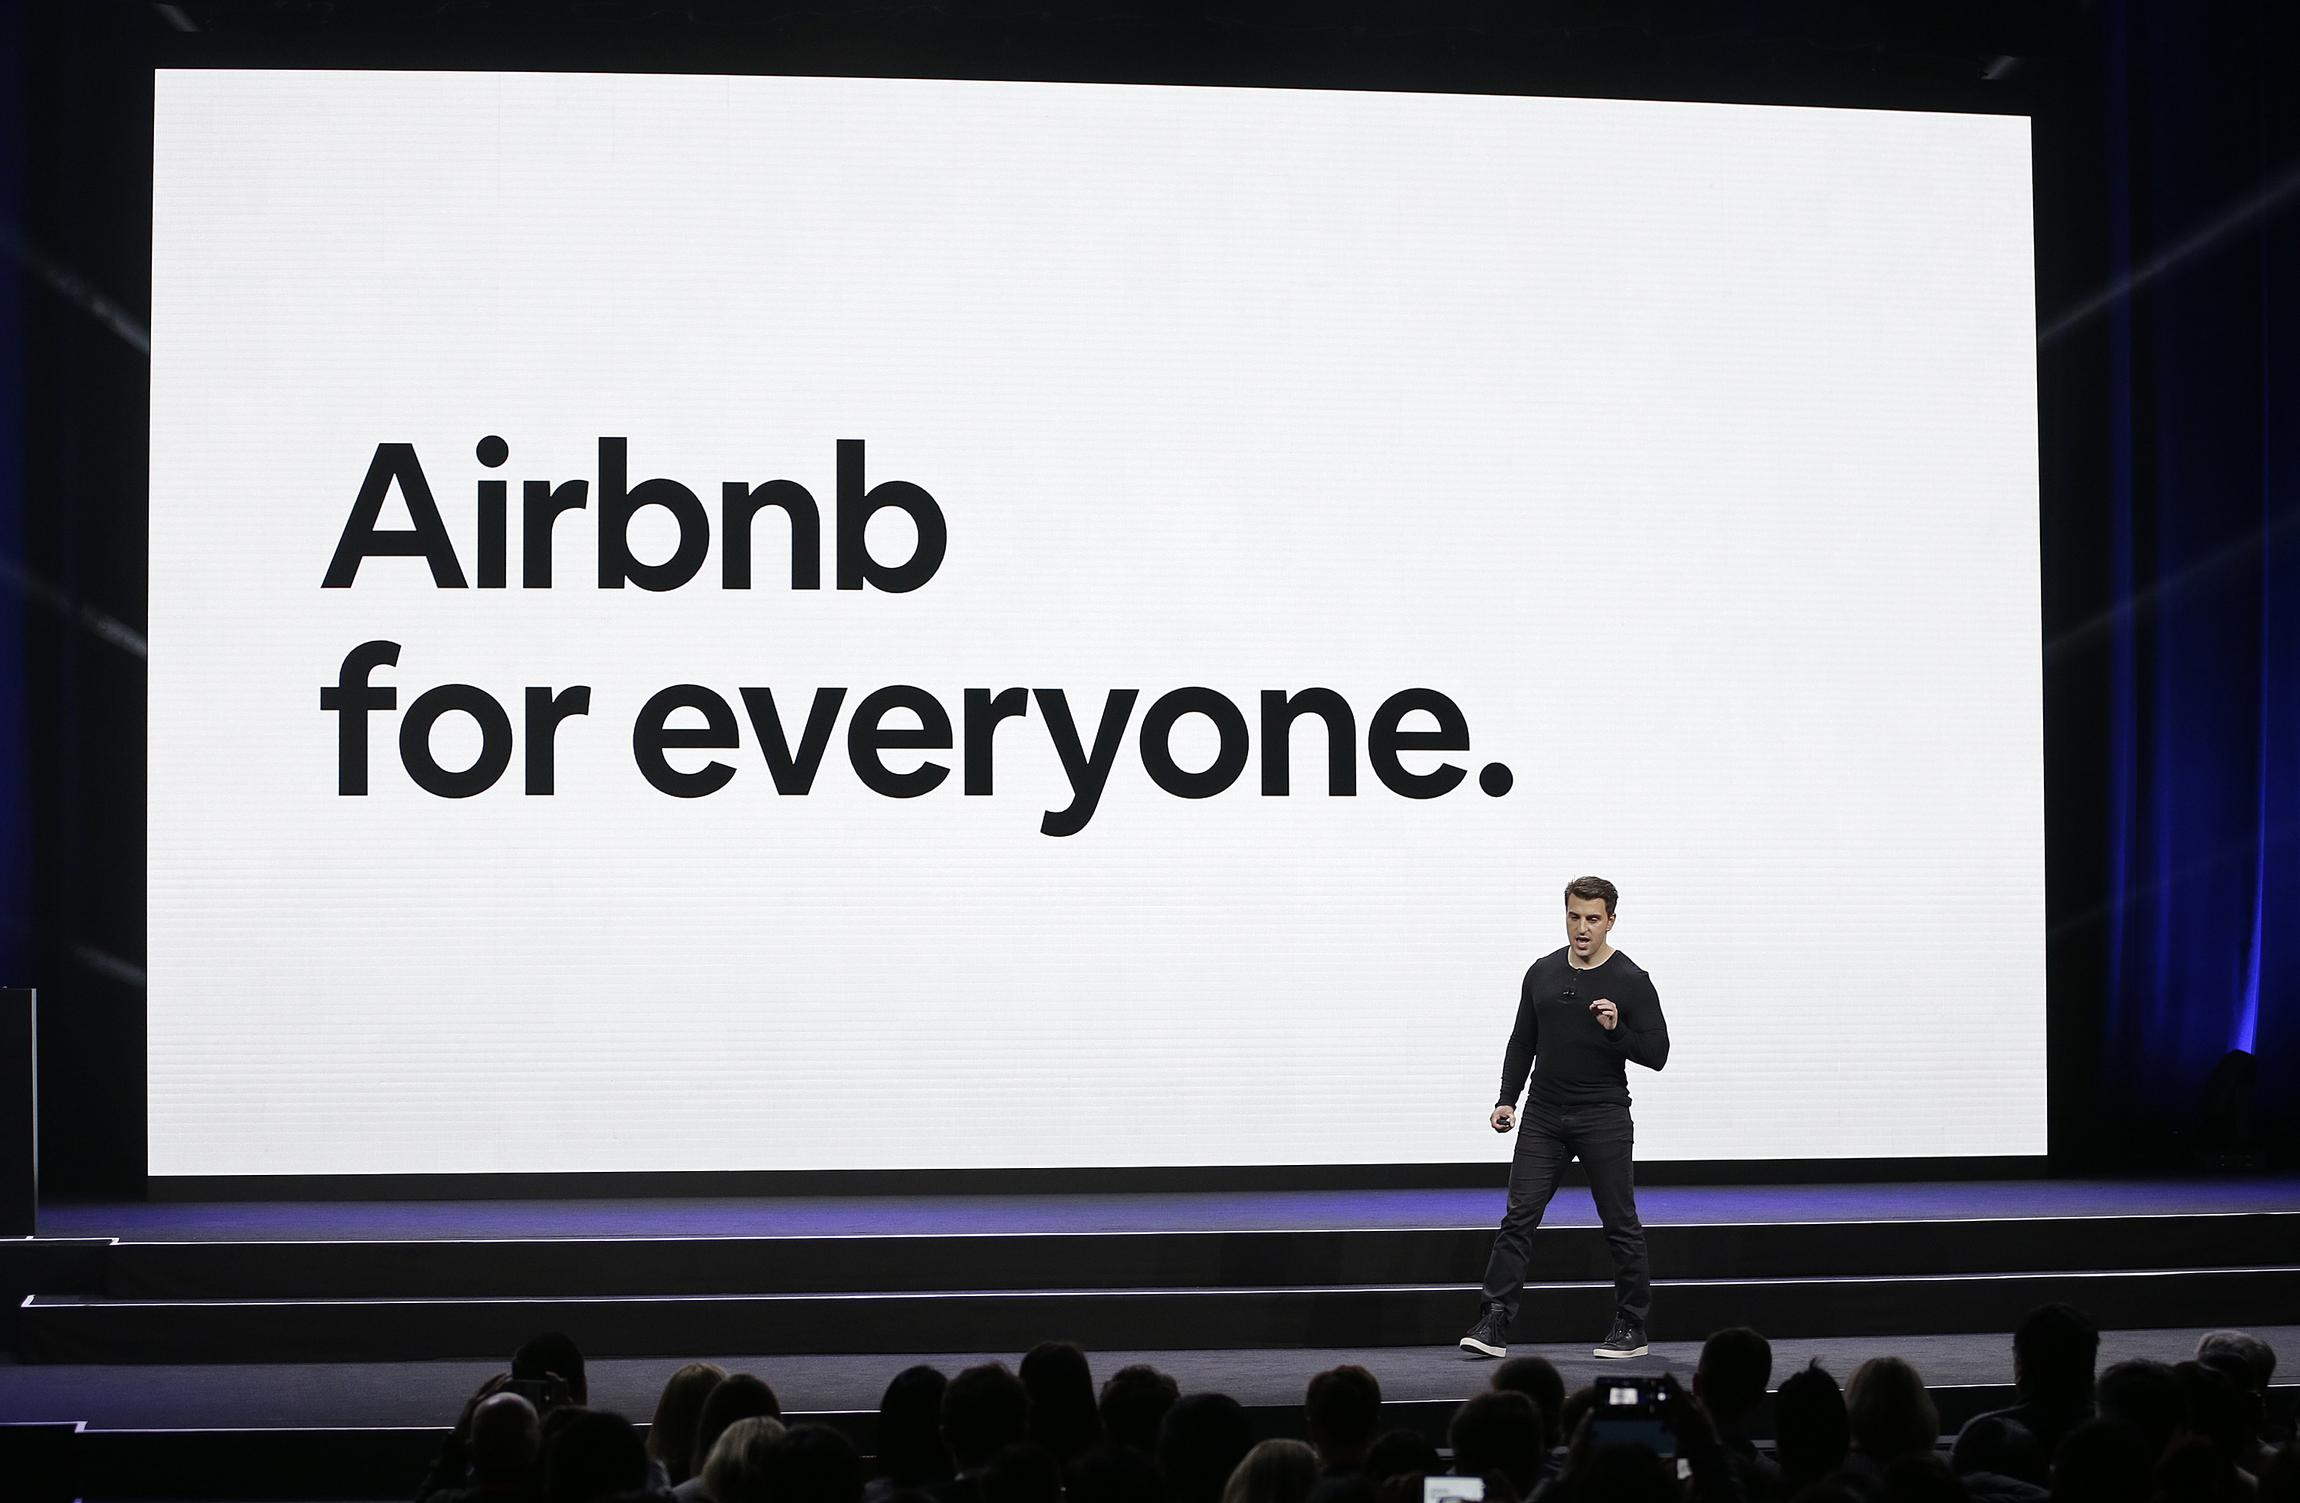 Restrictions on Uber and Airbnb Are Driven by Cronyism